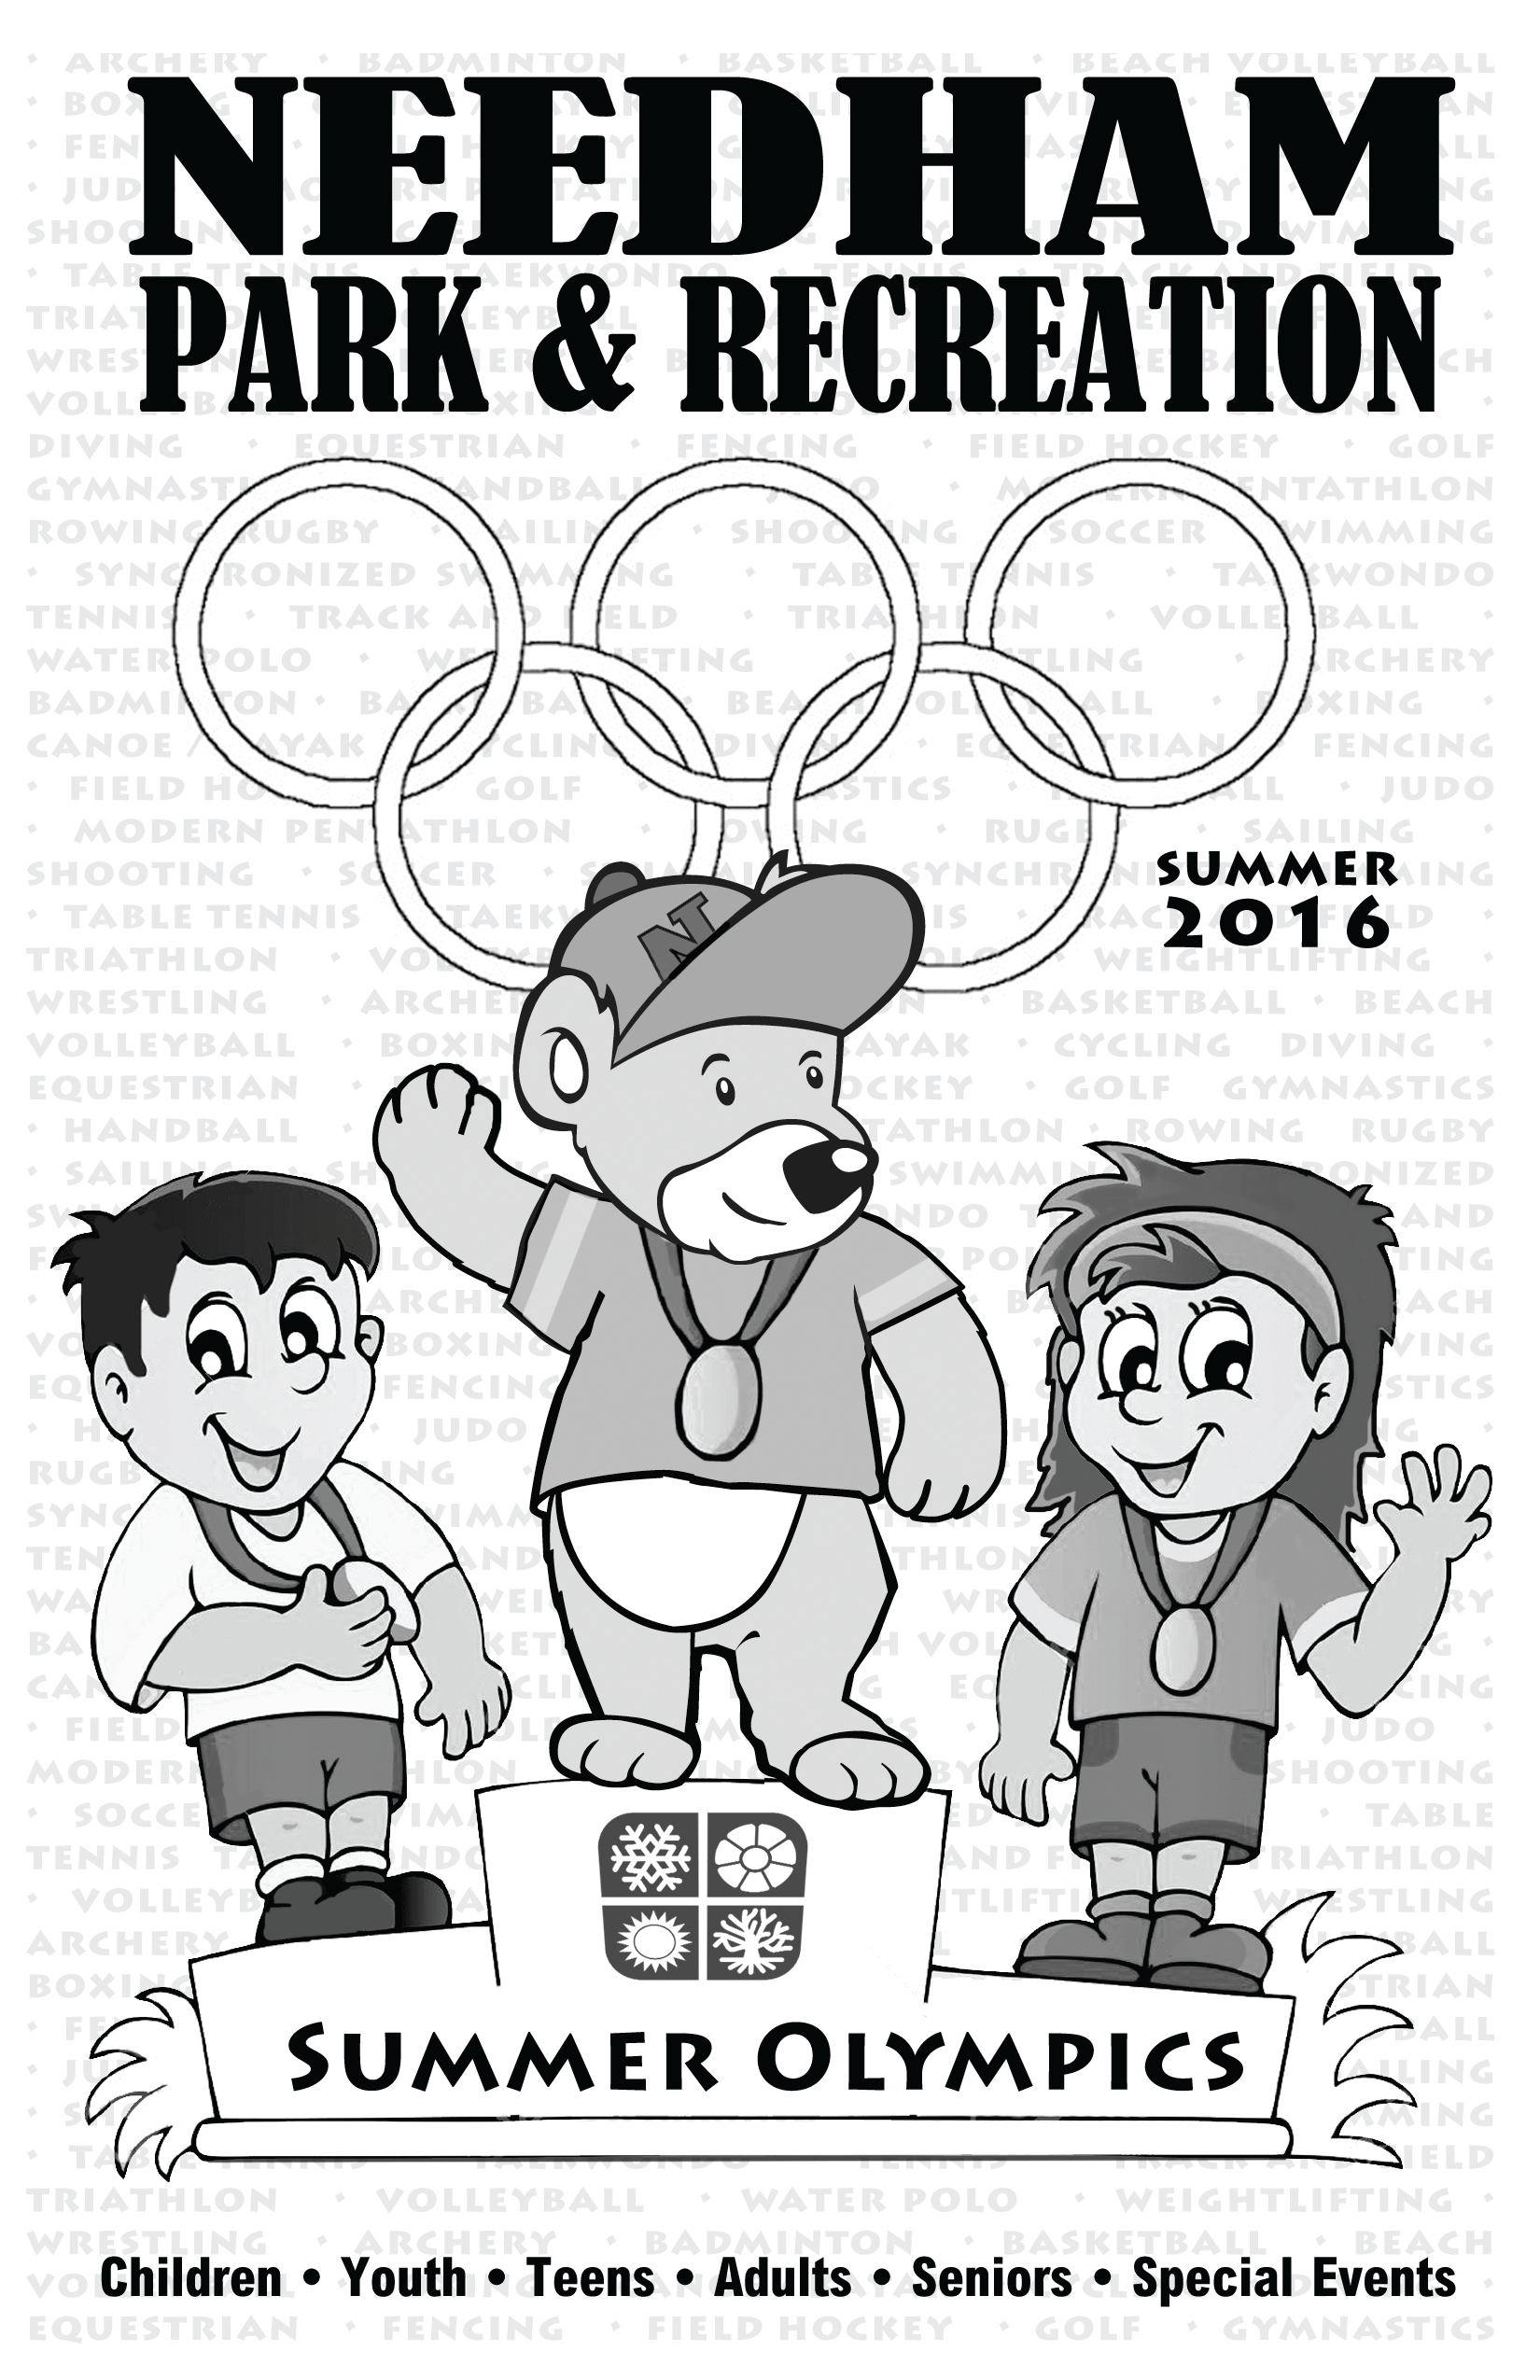 This is the cover image of the 2016 Summer Brochure featuring Parker, the Park and Recreation mascot, on top of an olympic podium!